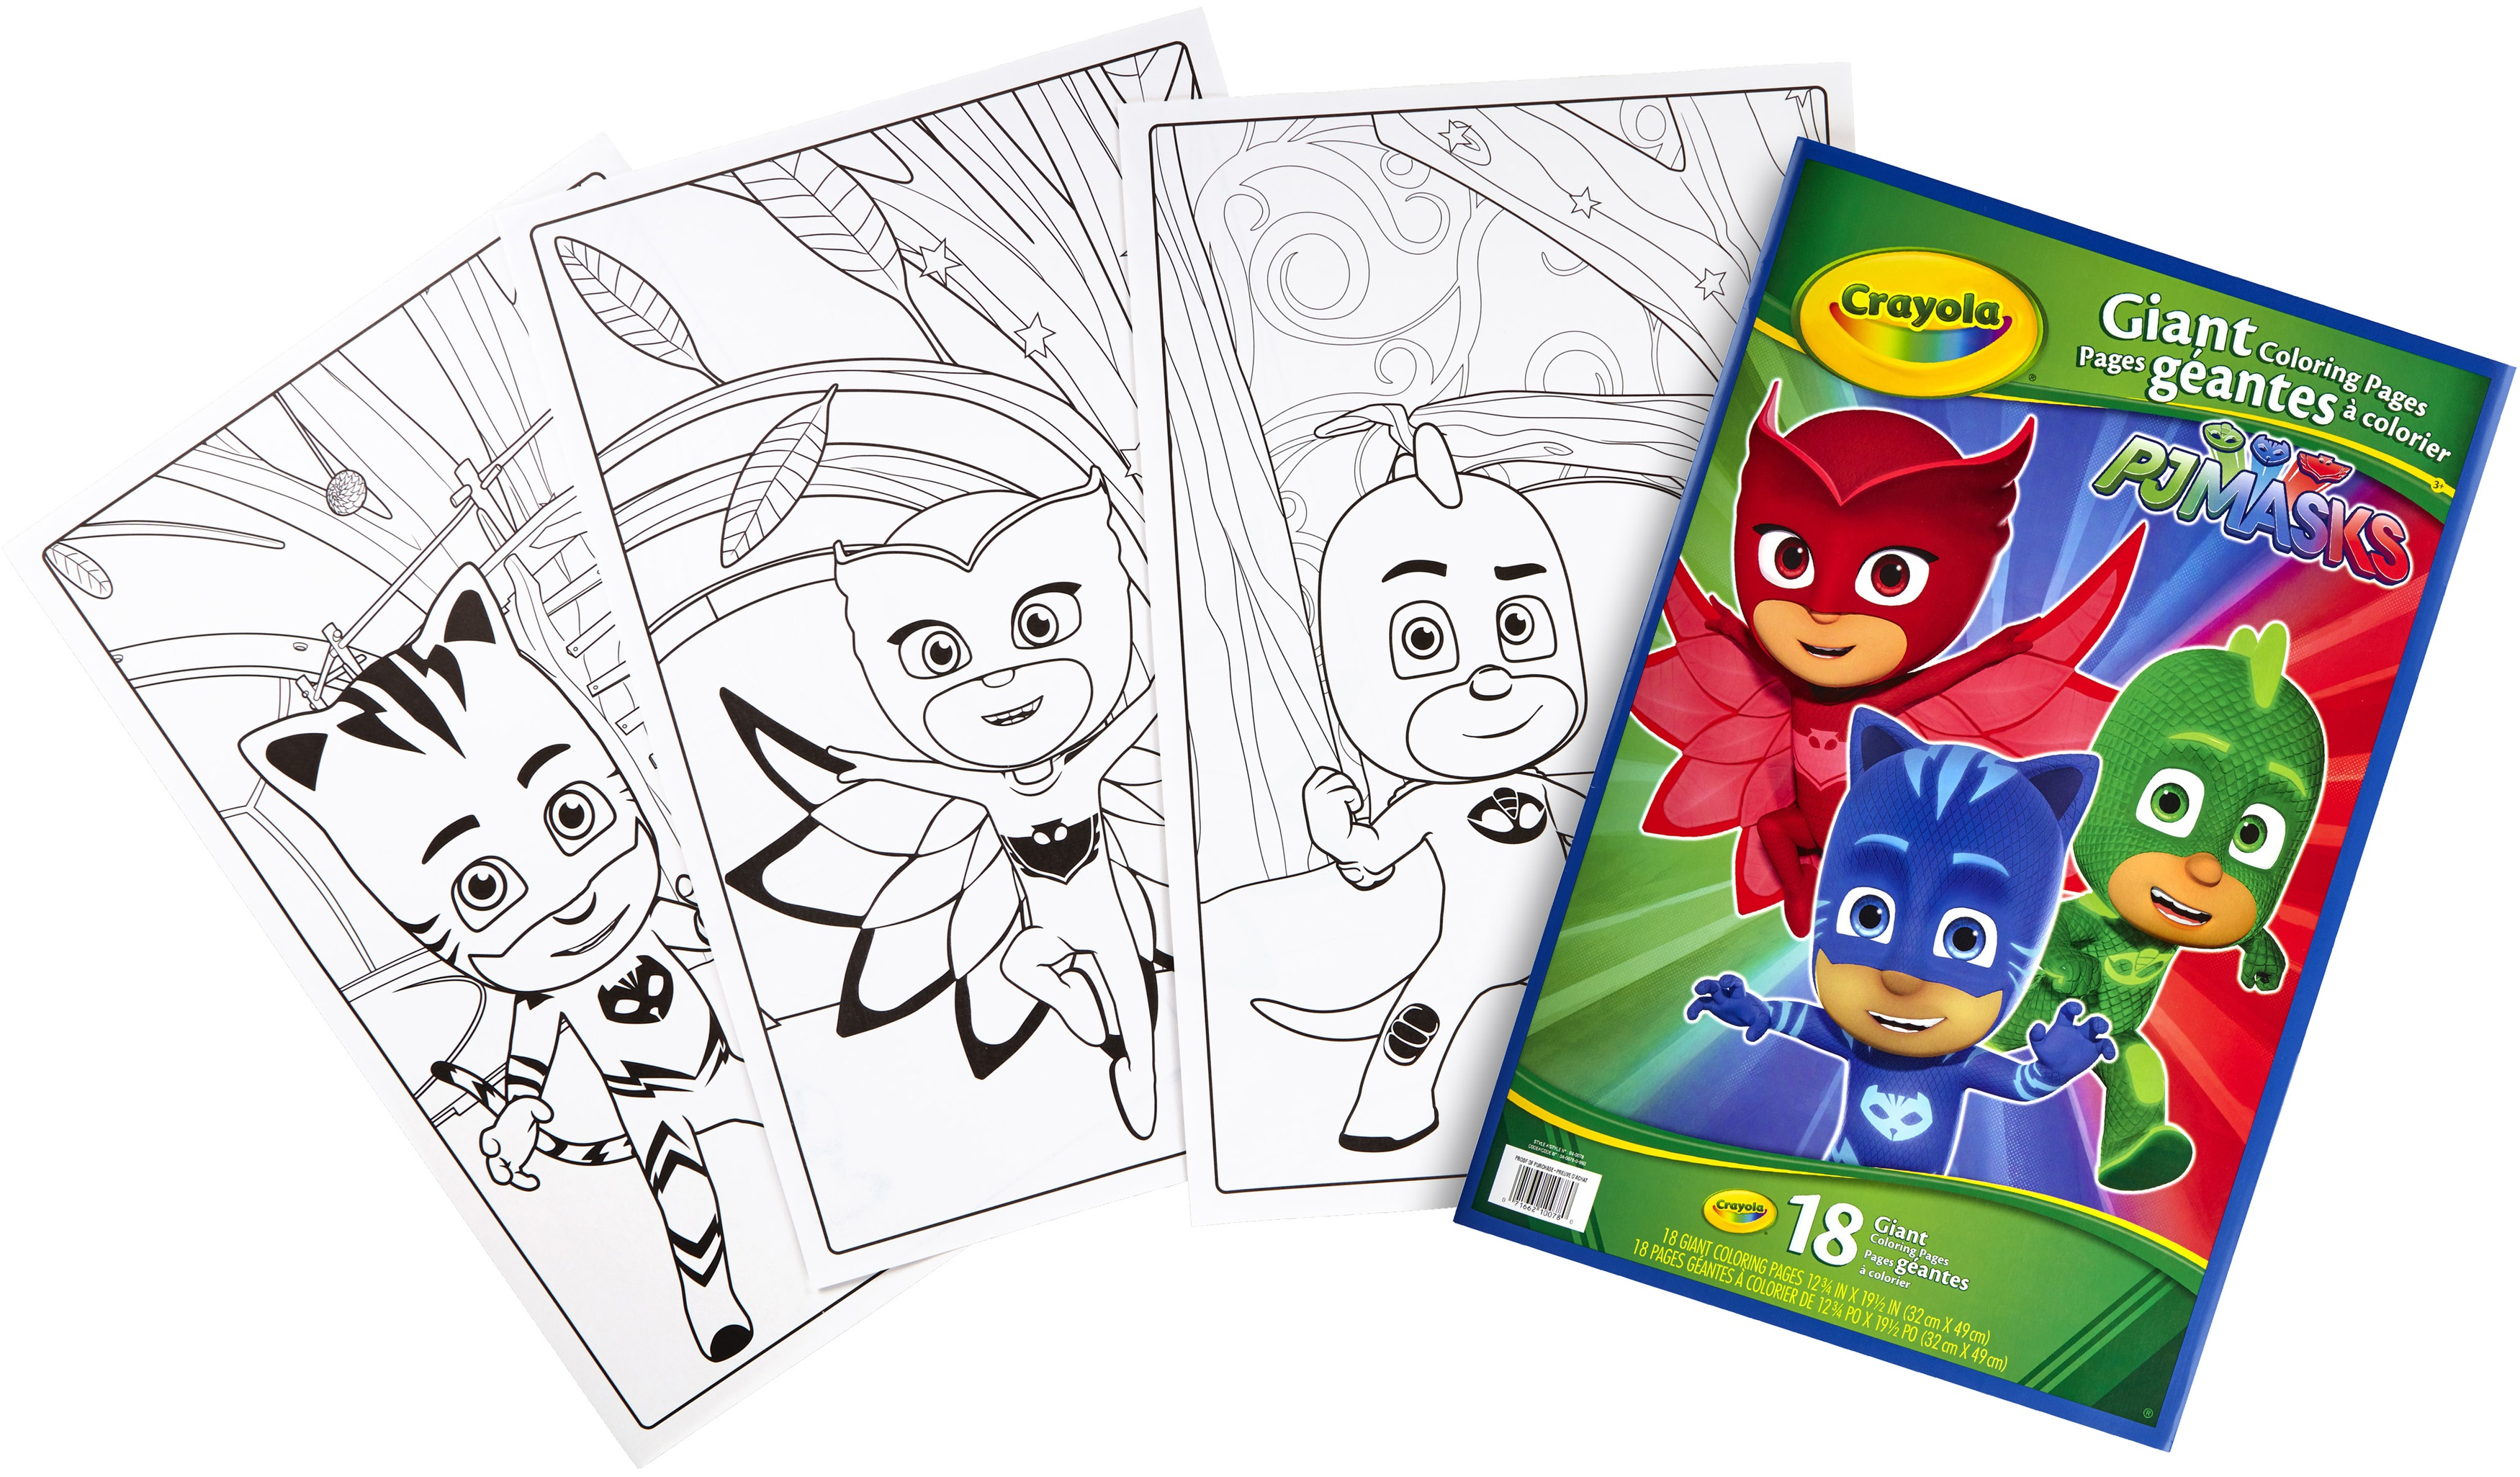 crayola giant coloring pages featuring